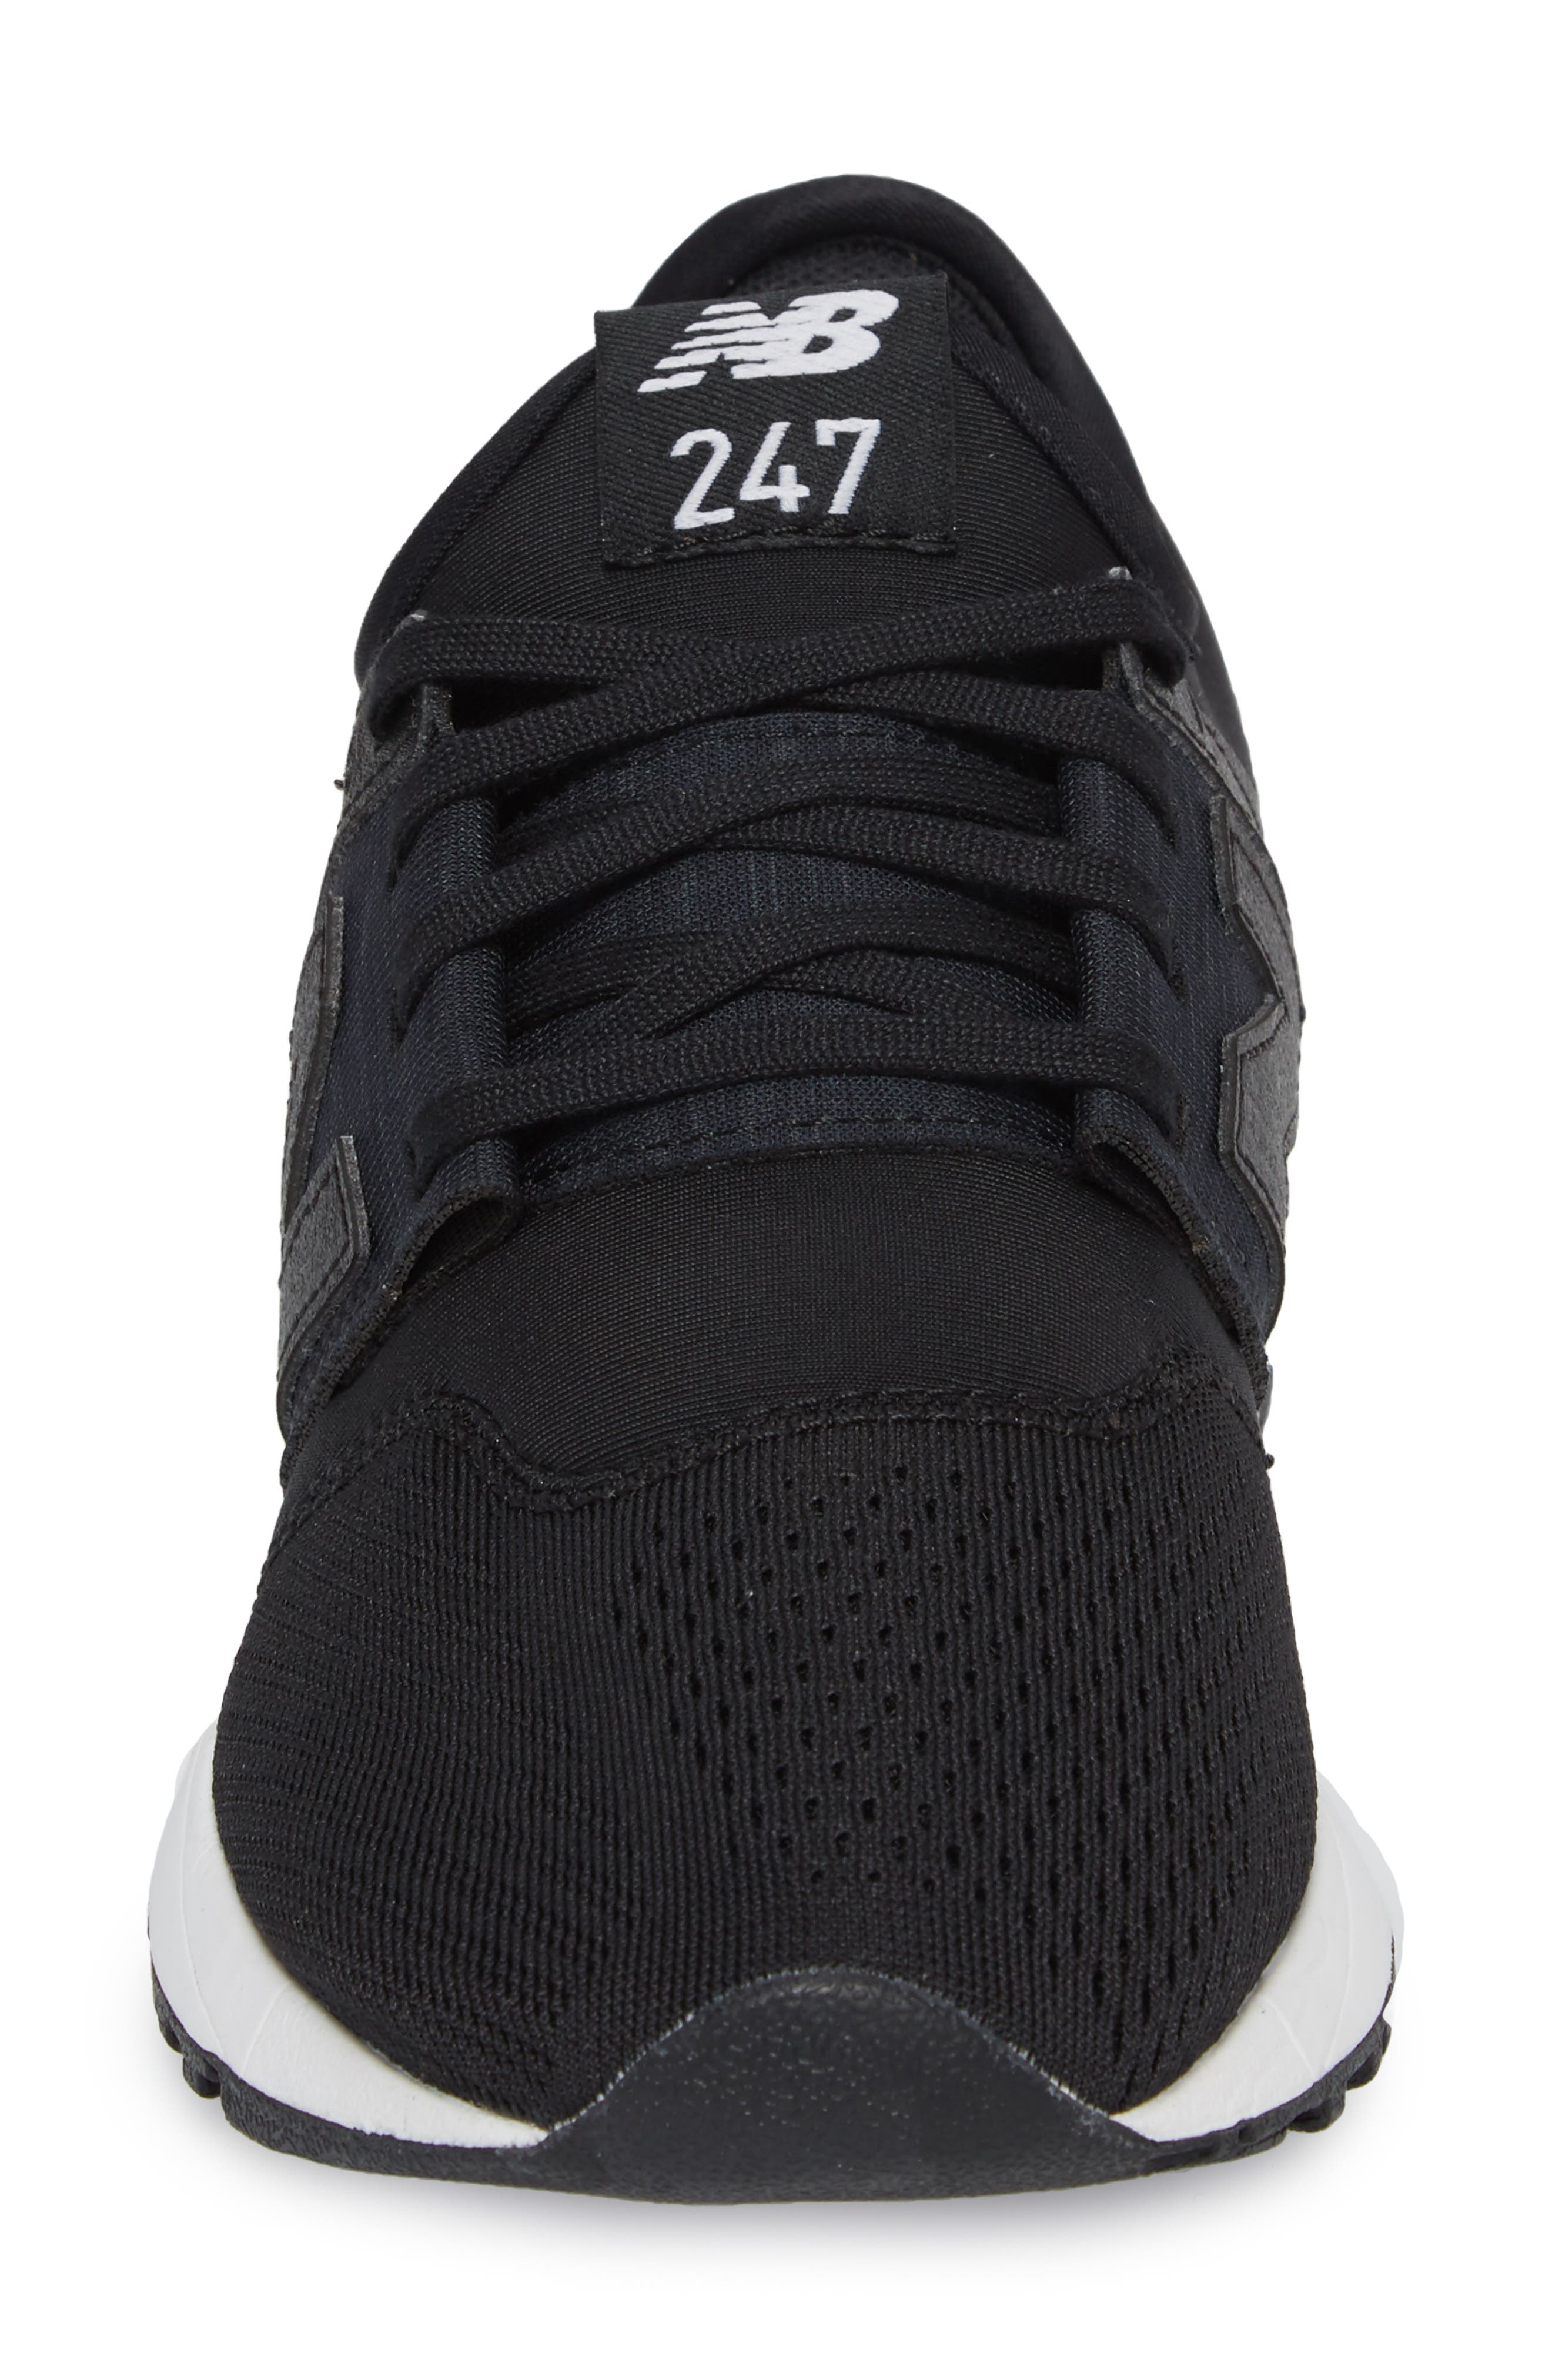 247 Classic Sneaker,                             Alternate thumbnail 4, color,                             001